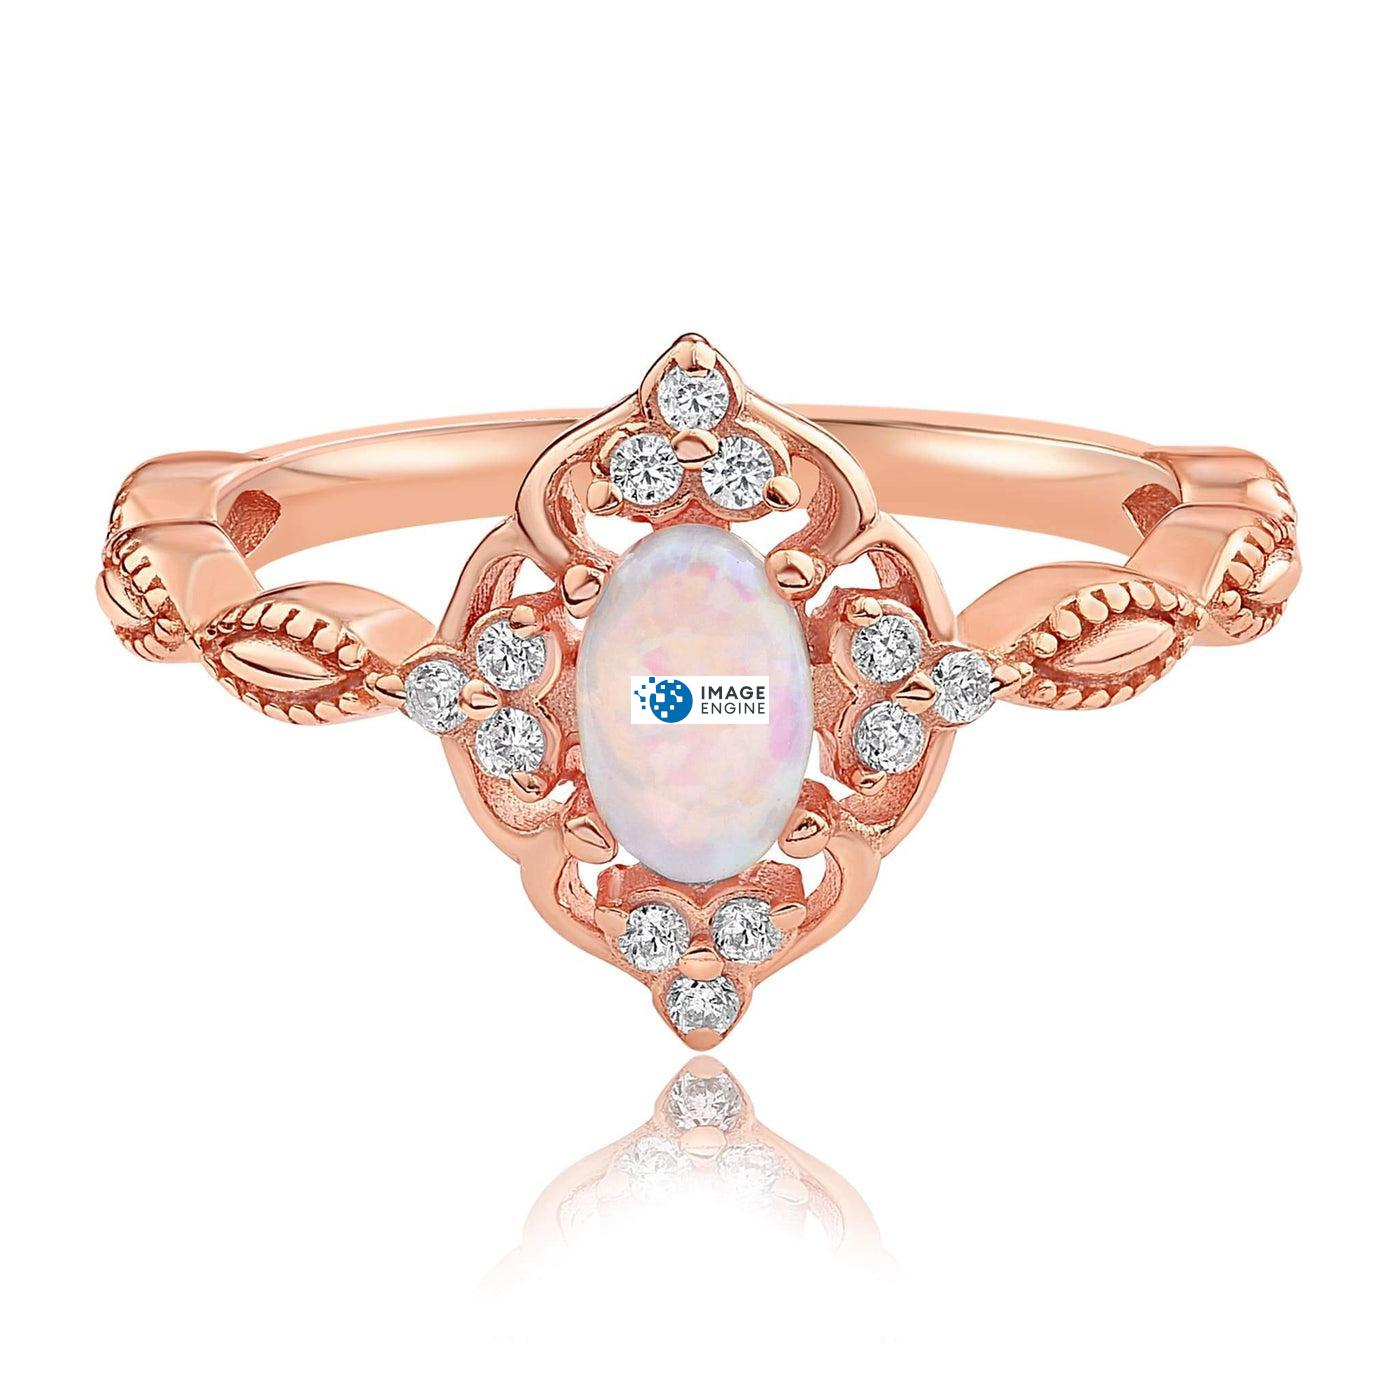 Blue Opal Carved Ring - Front View Facing Down - 18K Rose Gold Vermeil